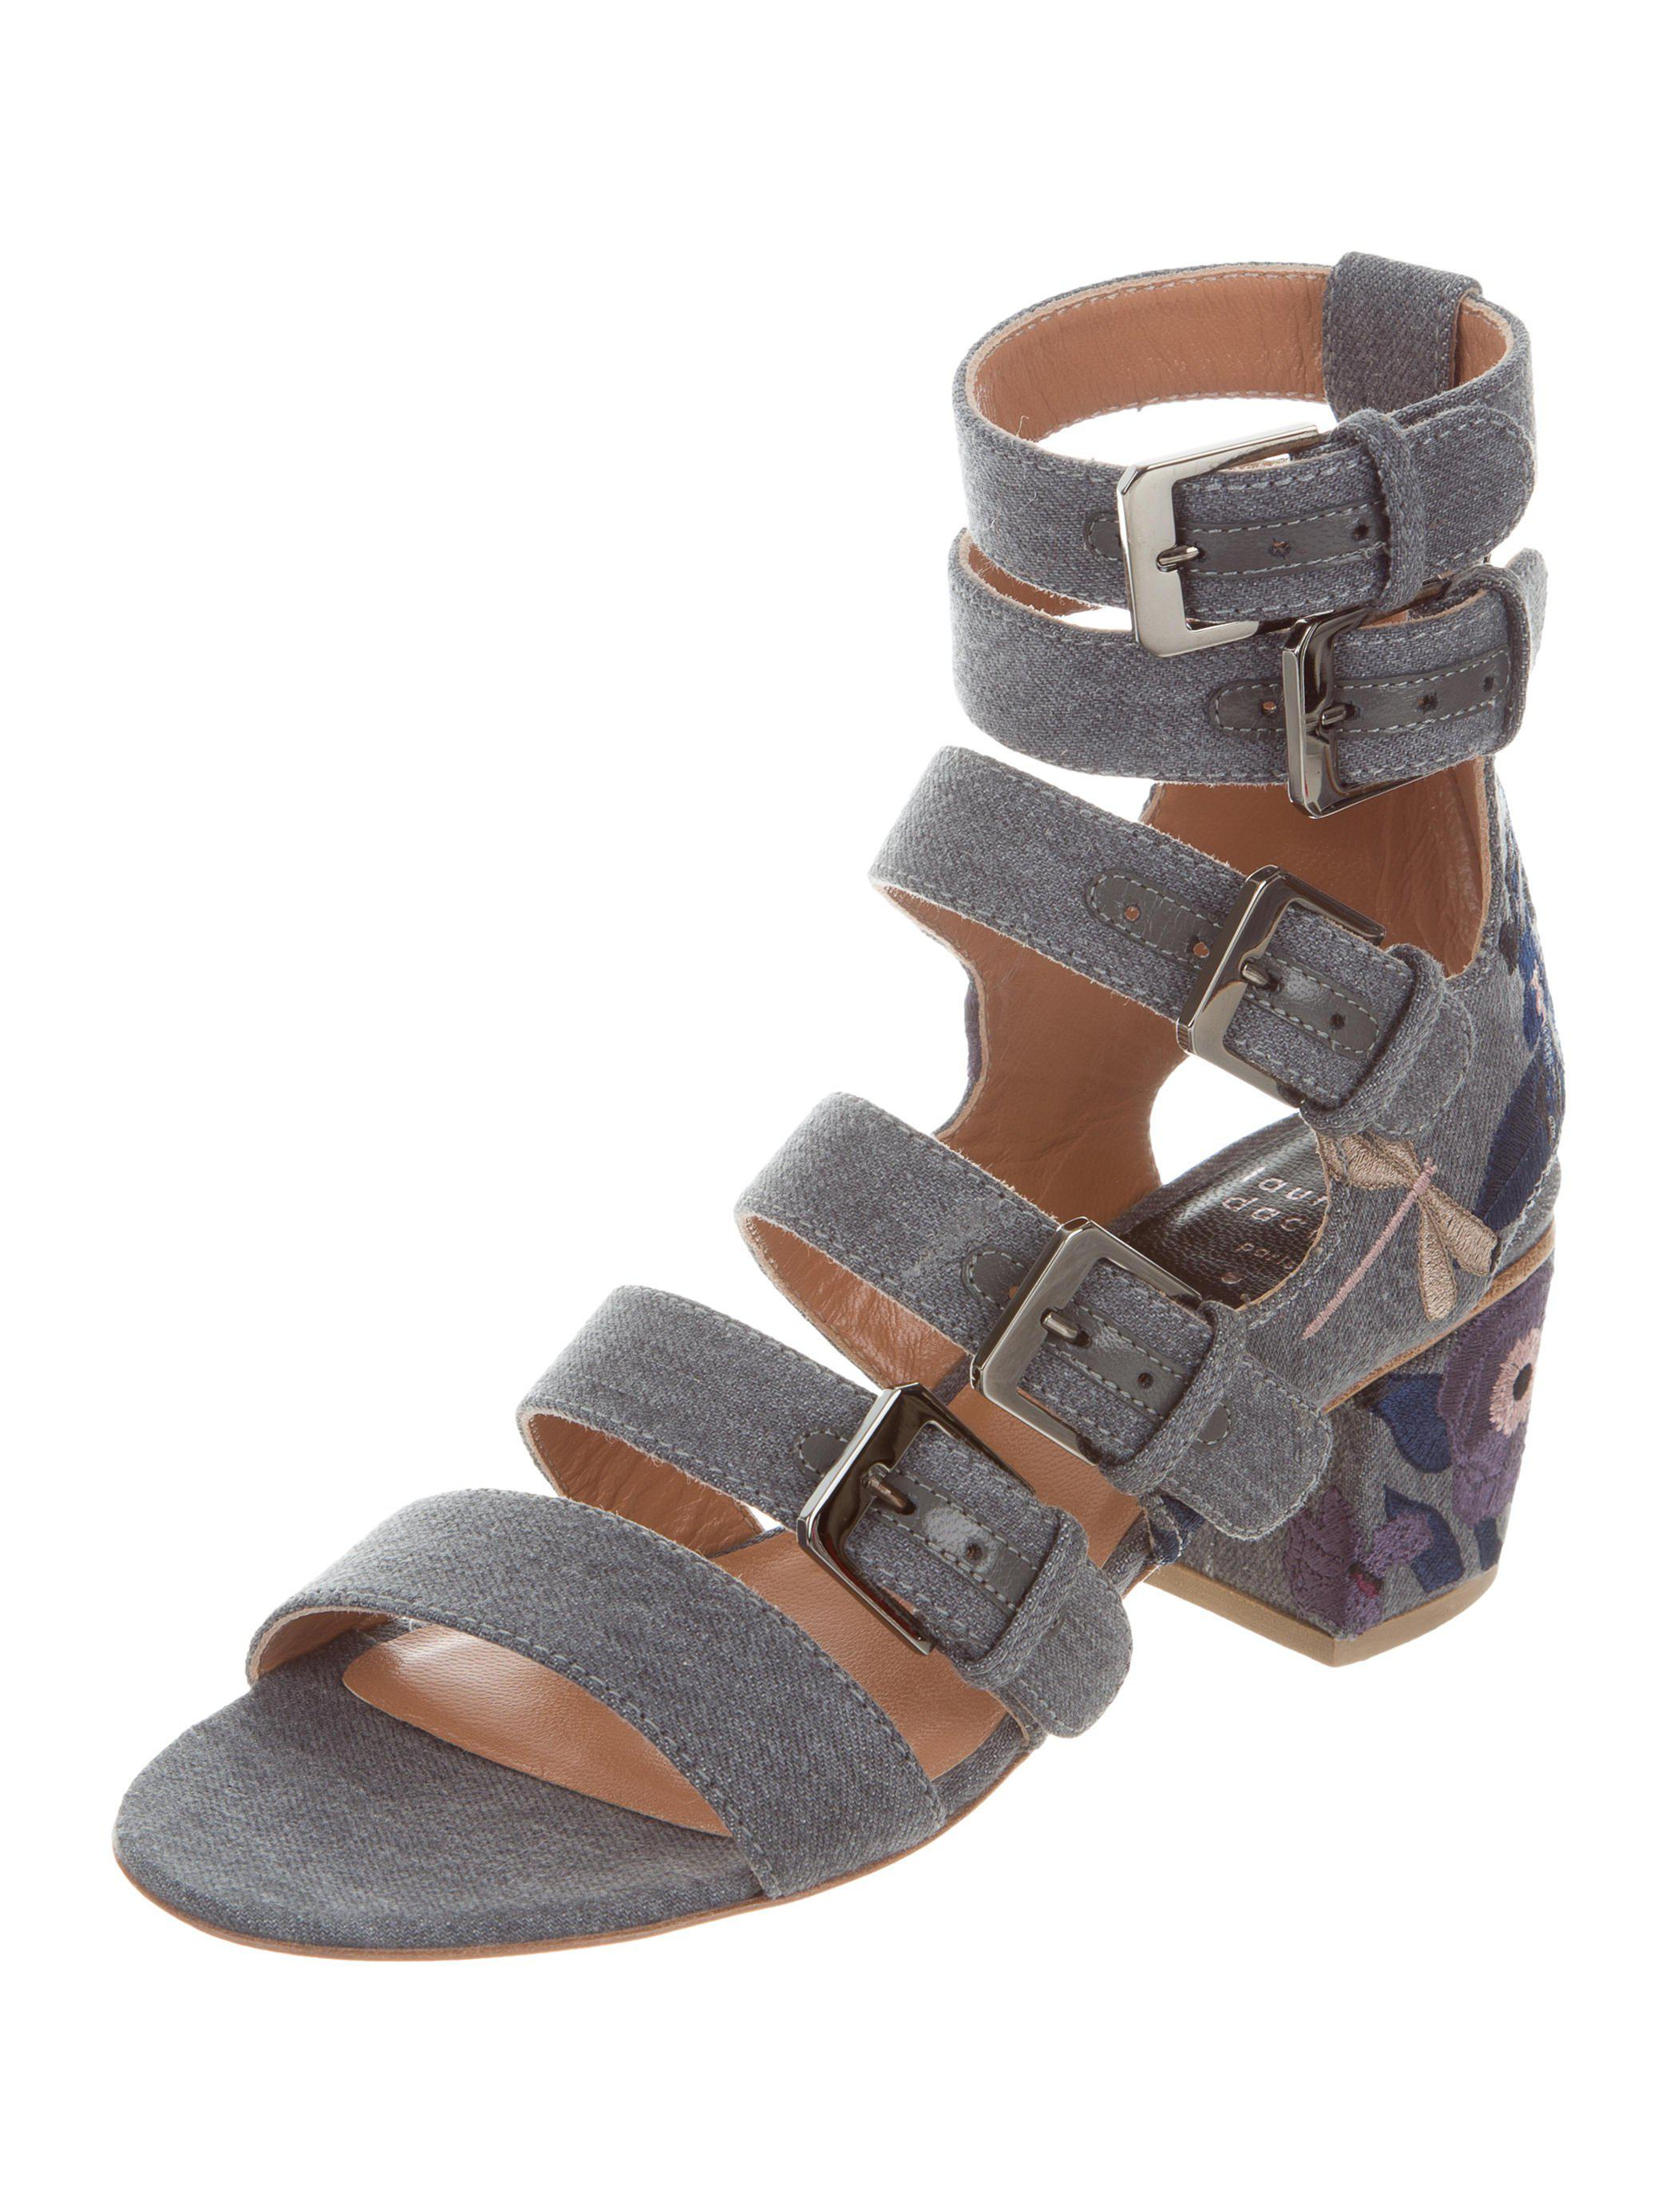 Laurence Dacade Floral-Embroidered Buckle Sandals w/ Tags quality from china cheap BwX3iFcM